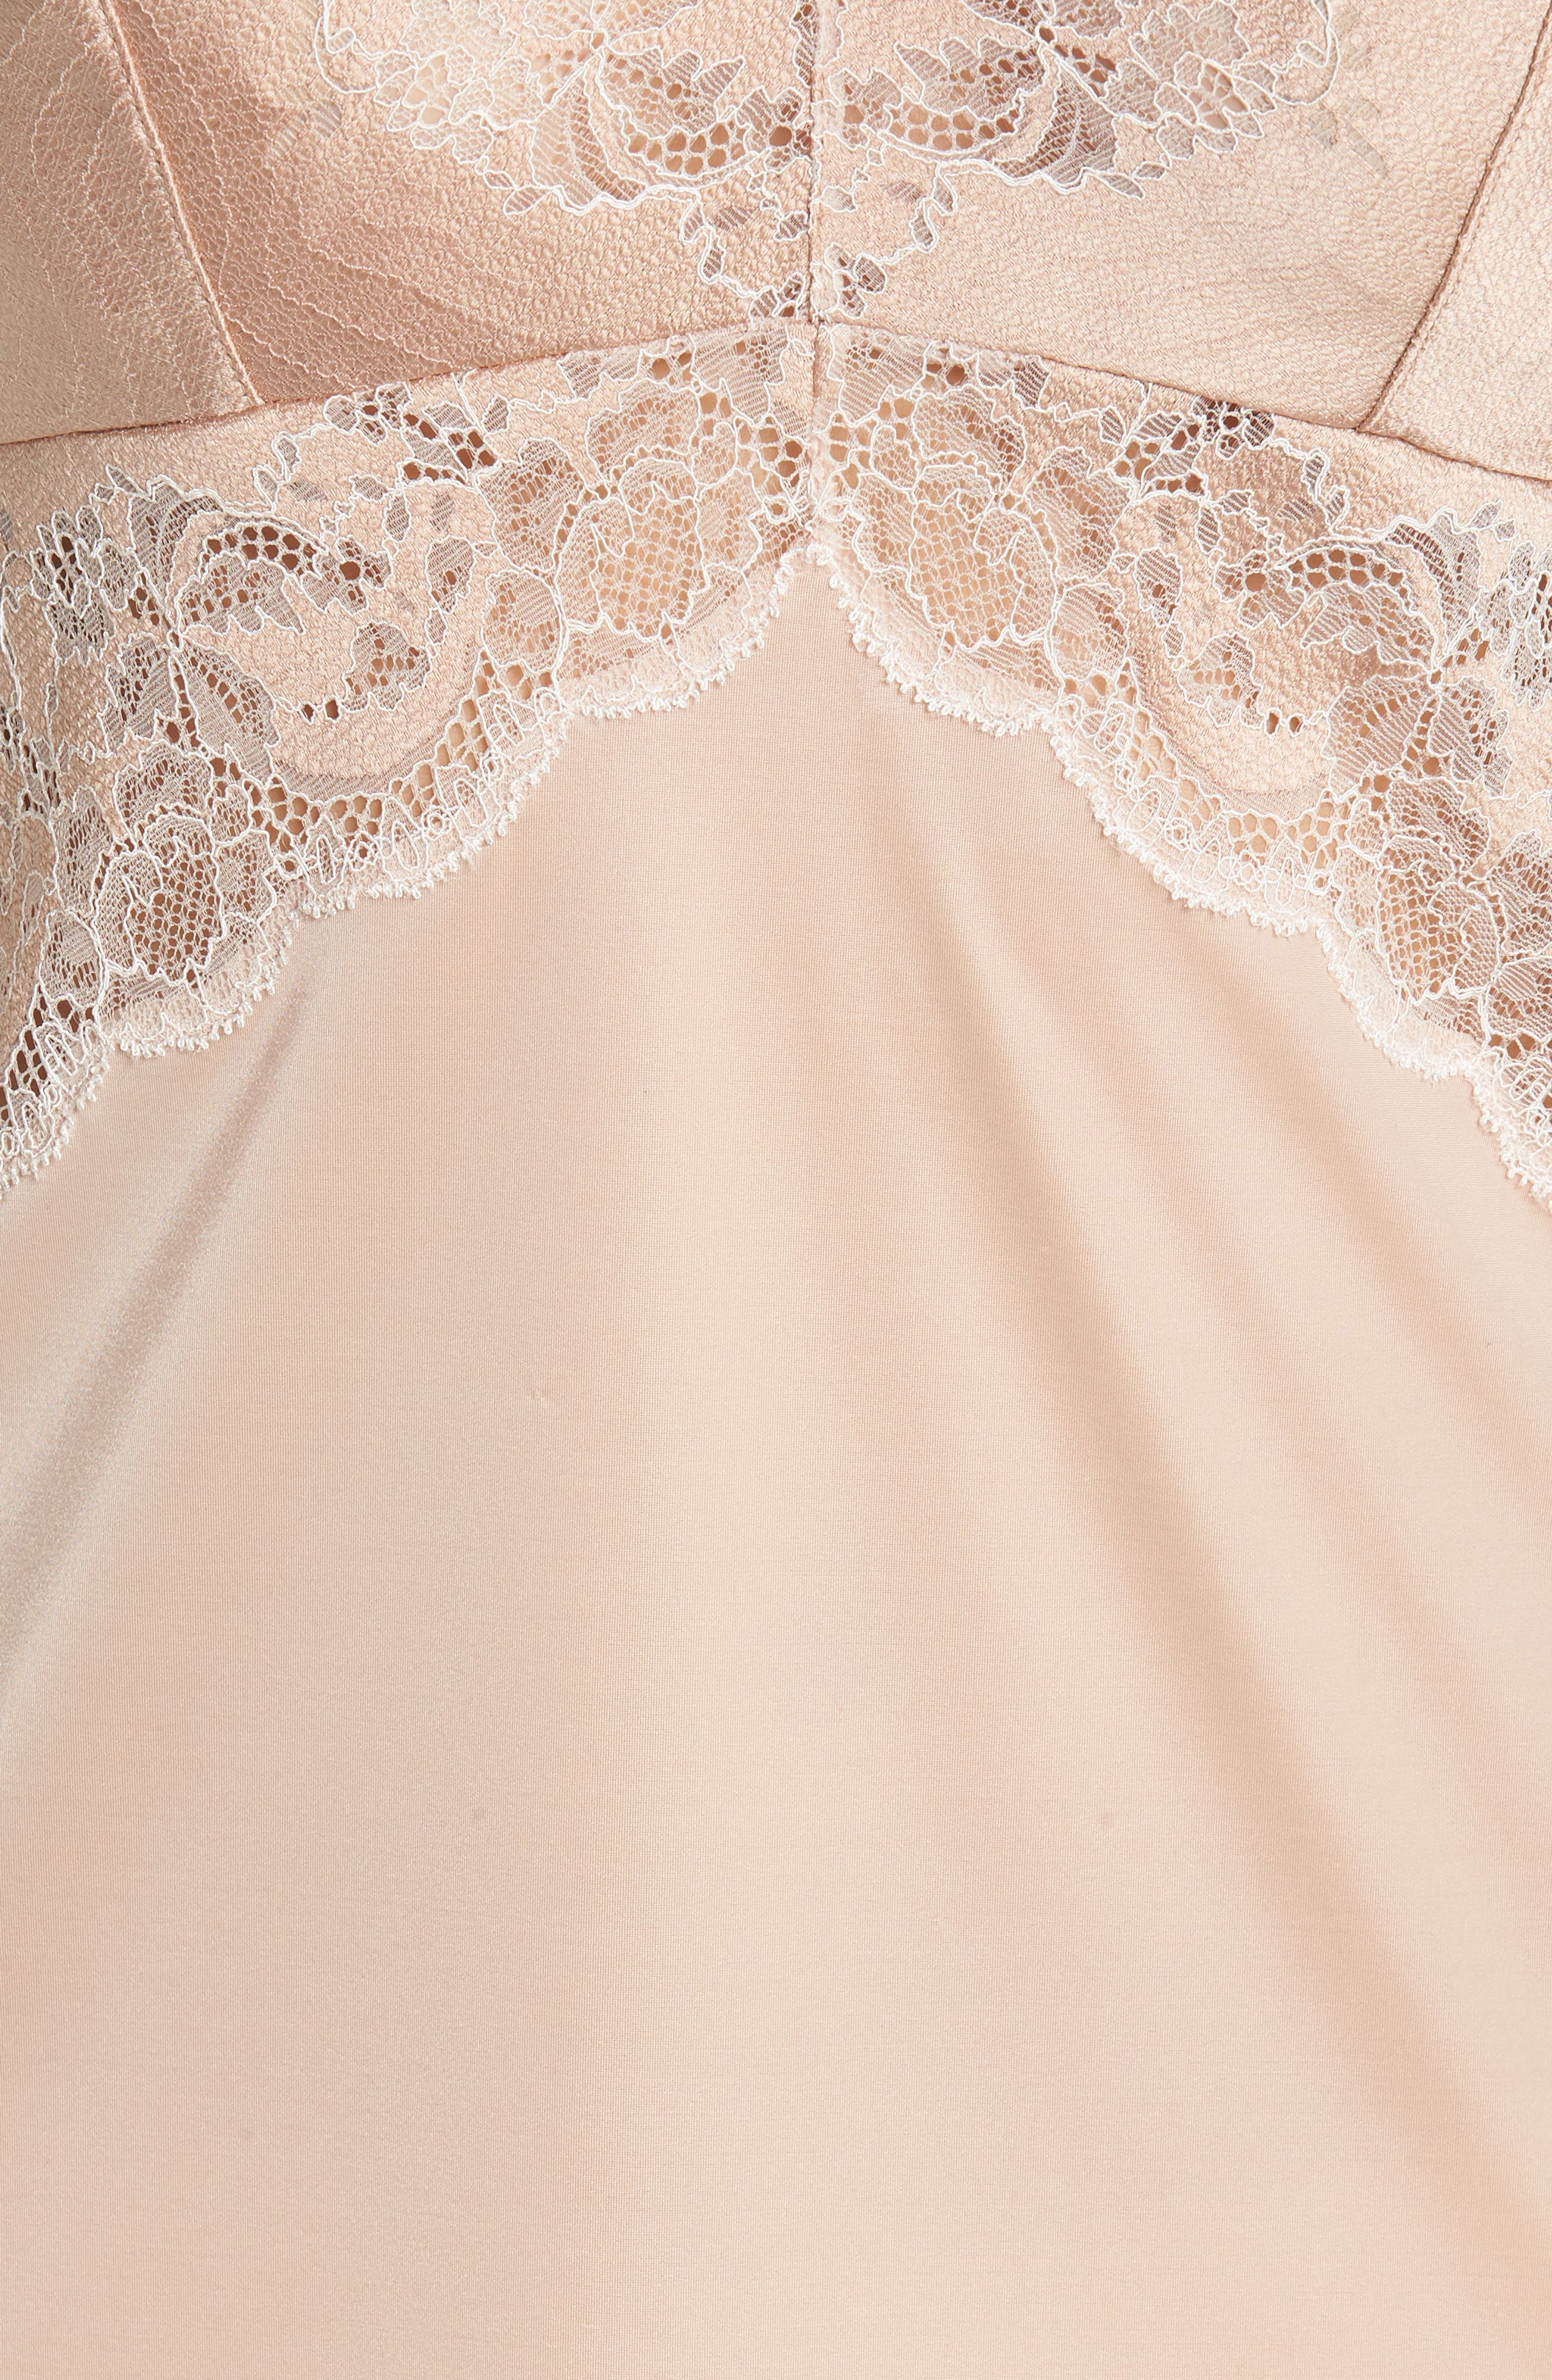 Lace Affair Chemise,                             Alternate thumbnail 6, color,                             Rose Dust/ Angel Wing